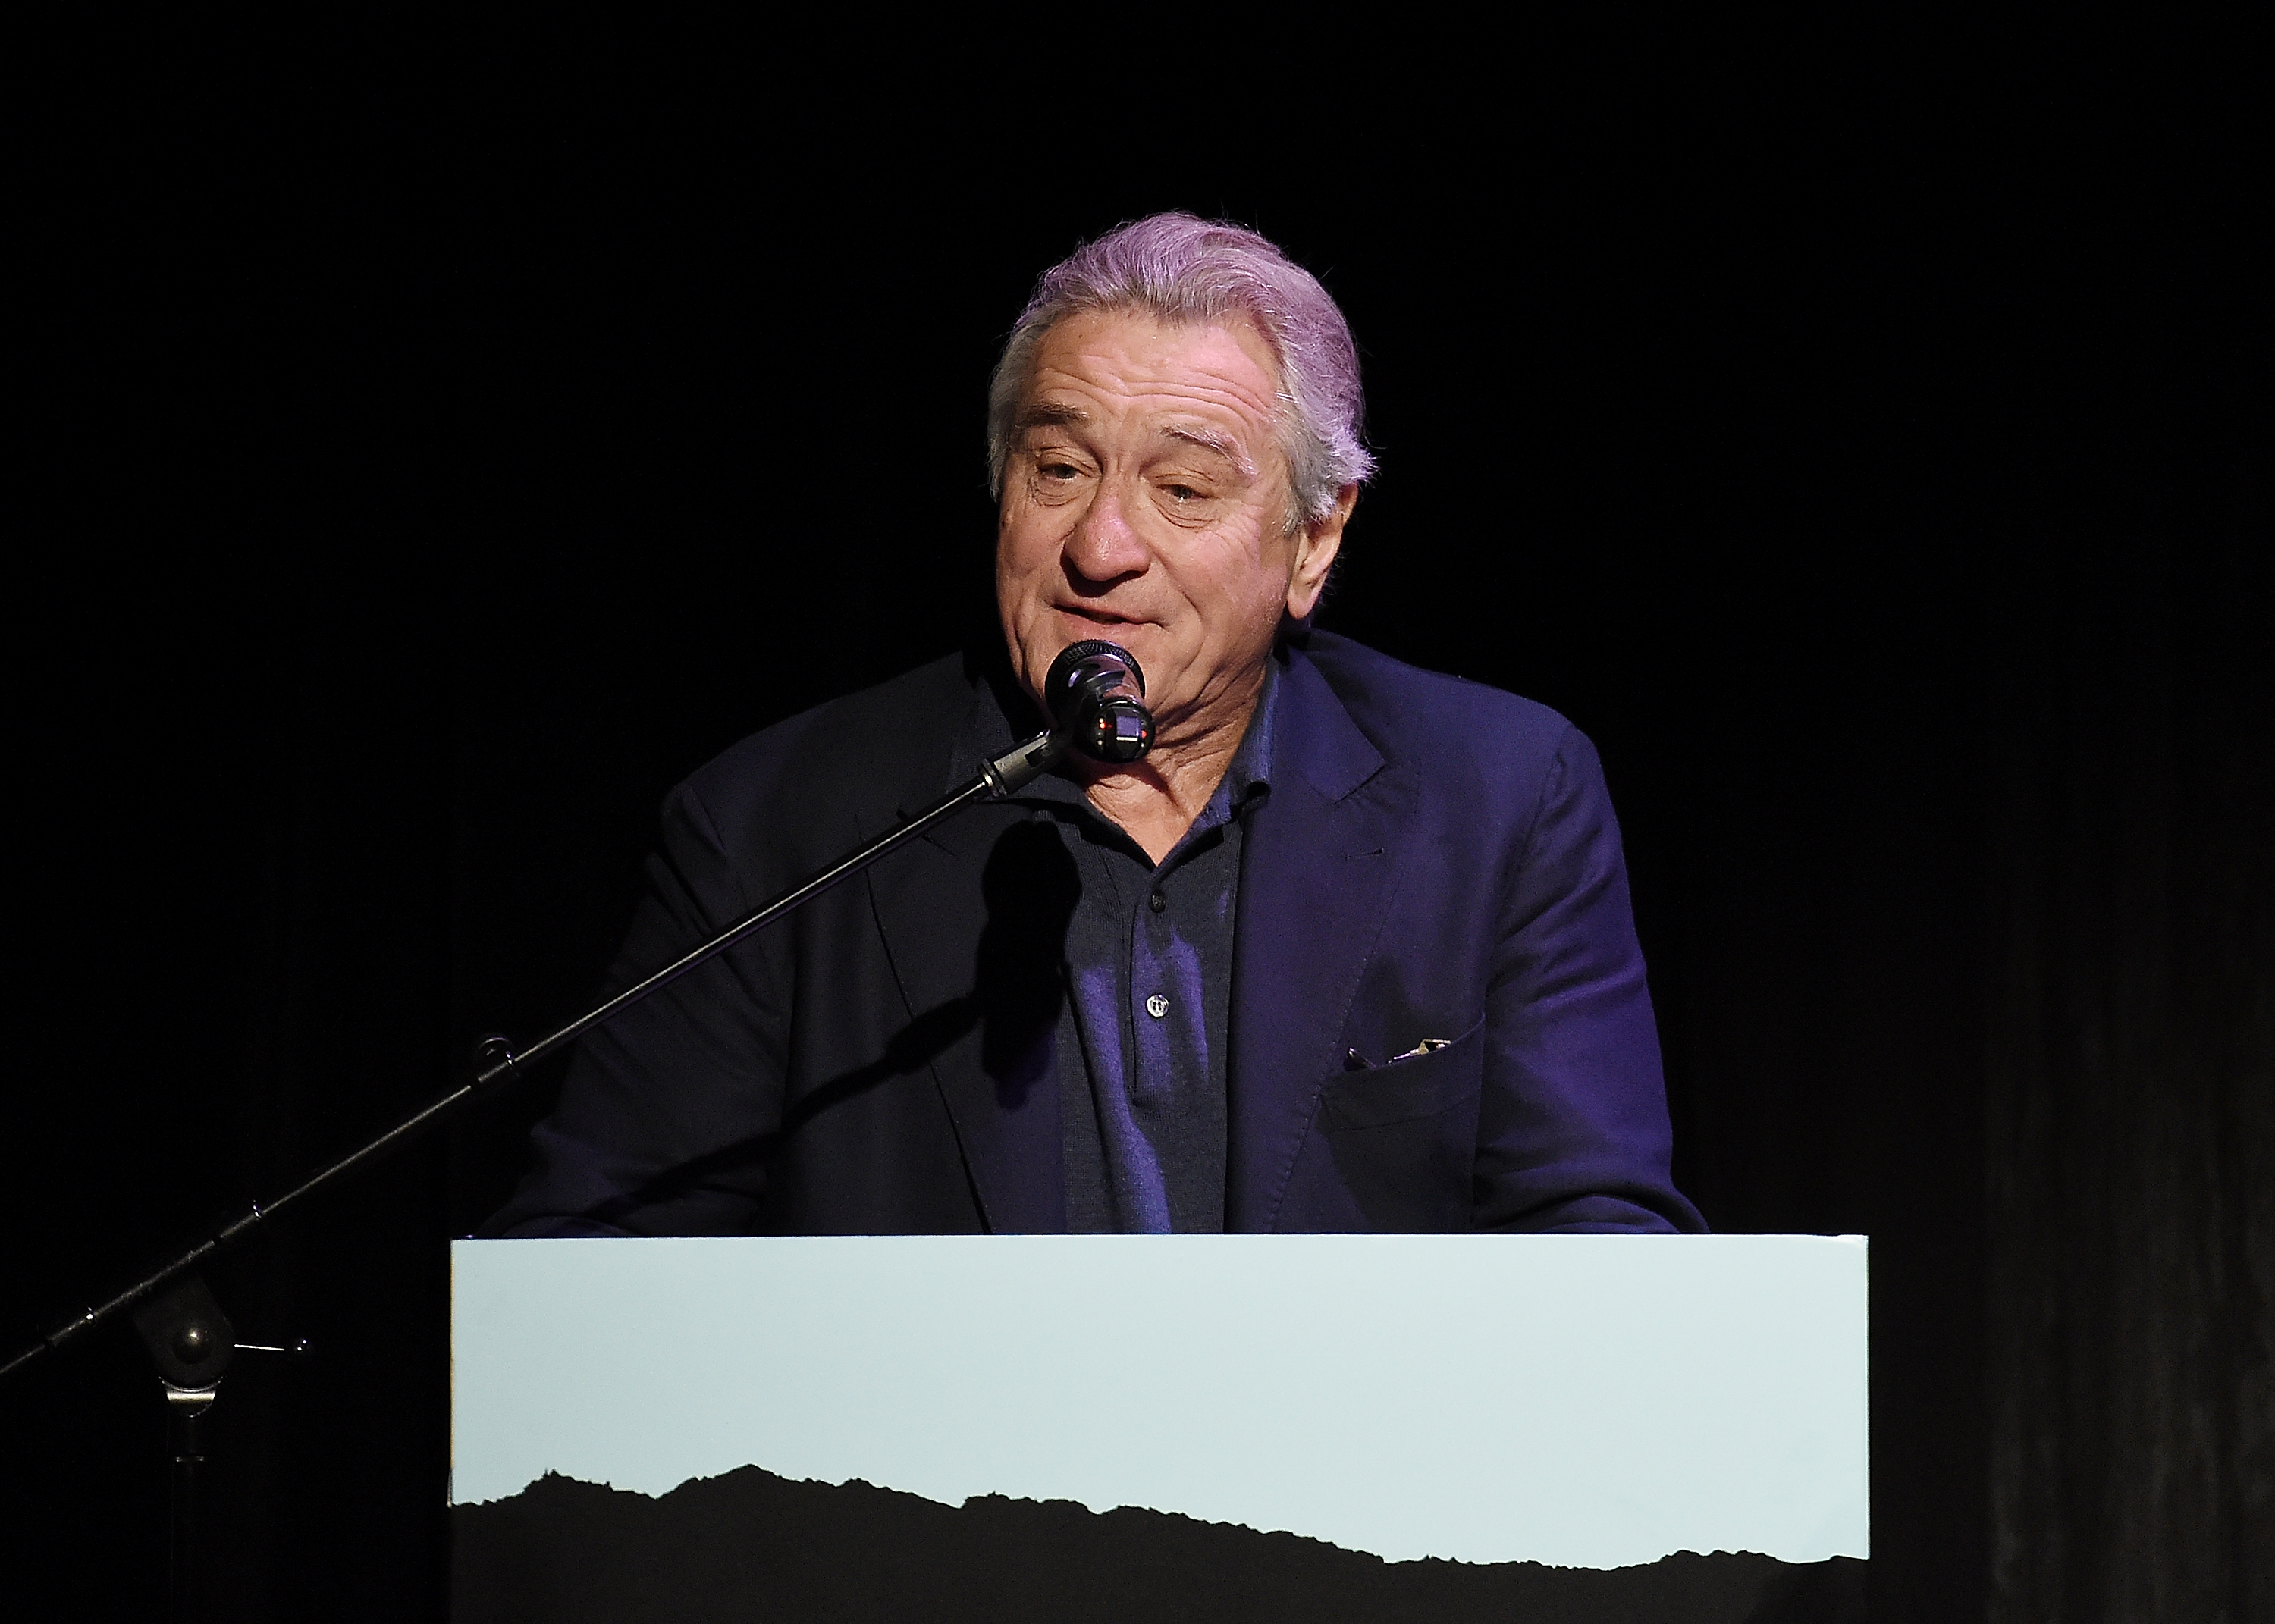 Robert De Niro speaks at the introduction for the screening of 'The Fourth Estate' - 2018 Tribeca Film Festival at BMCC Tribeca PAC on April 28, 2018, in New York City. (Getty Images)